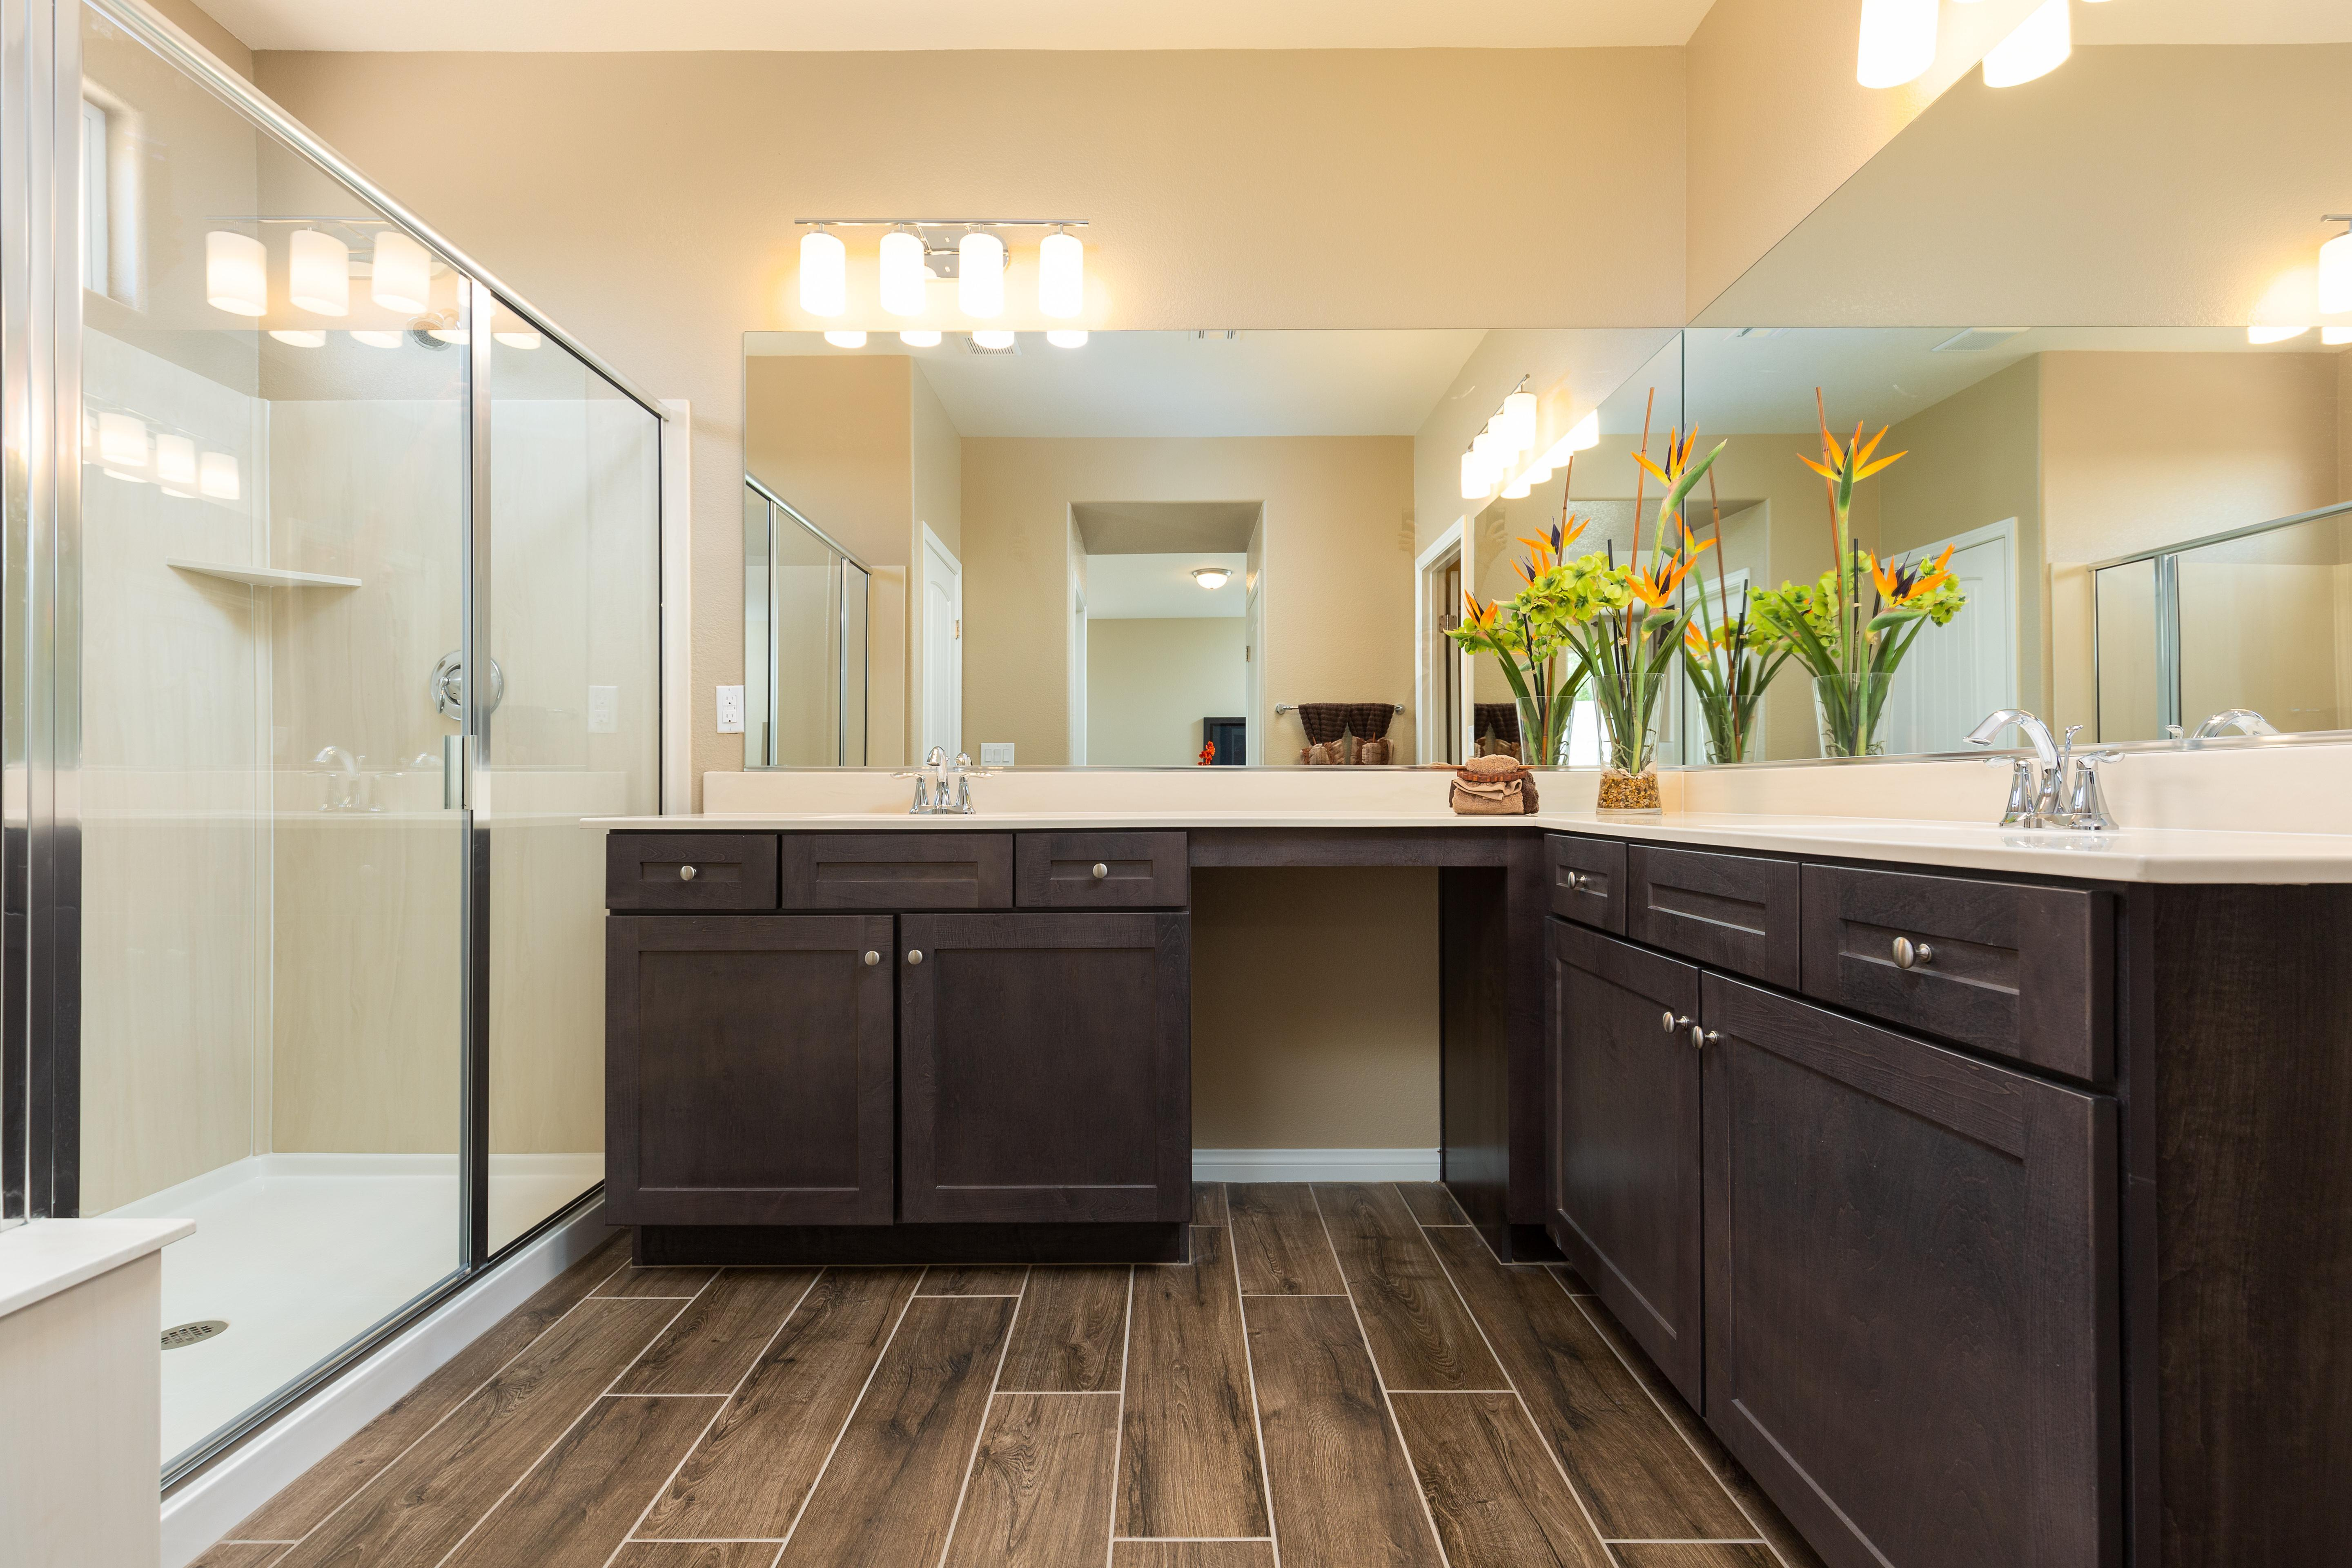 Bathroom featured in the Plan 2 By Storybook Homes in Las Vegas, NV